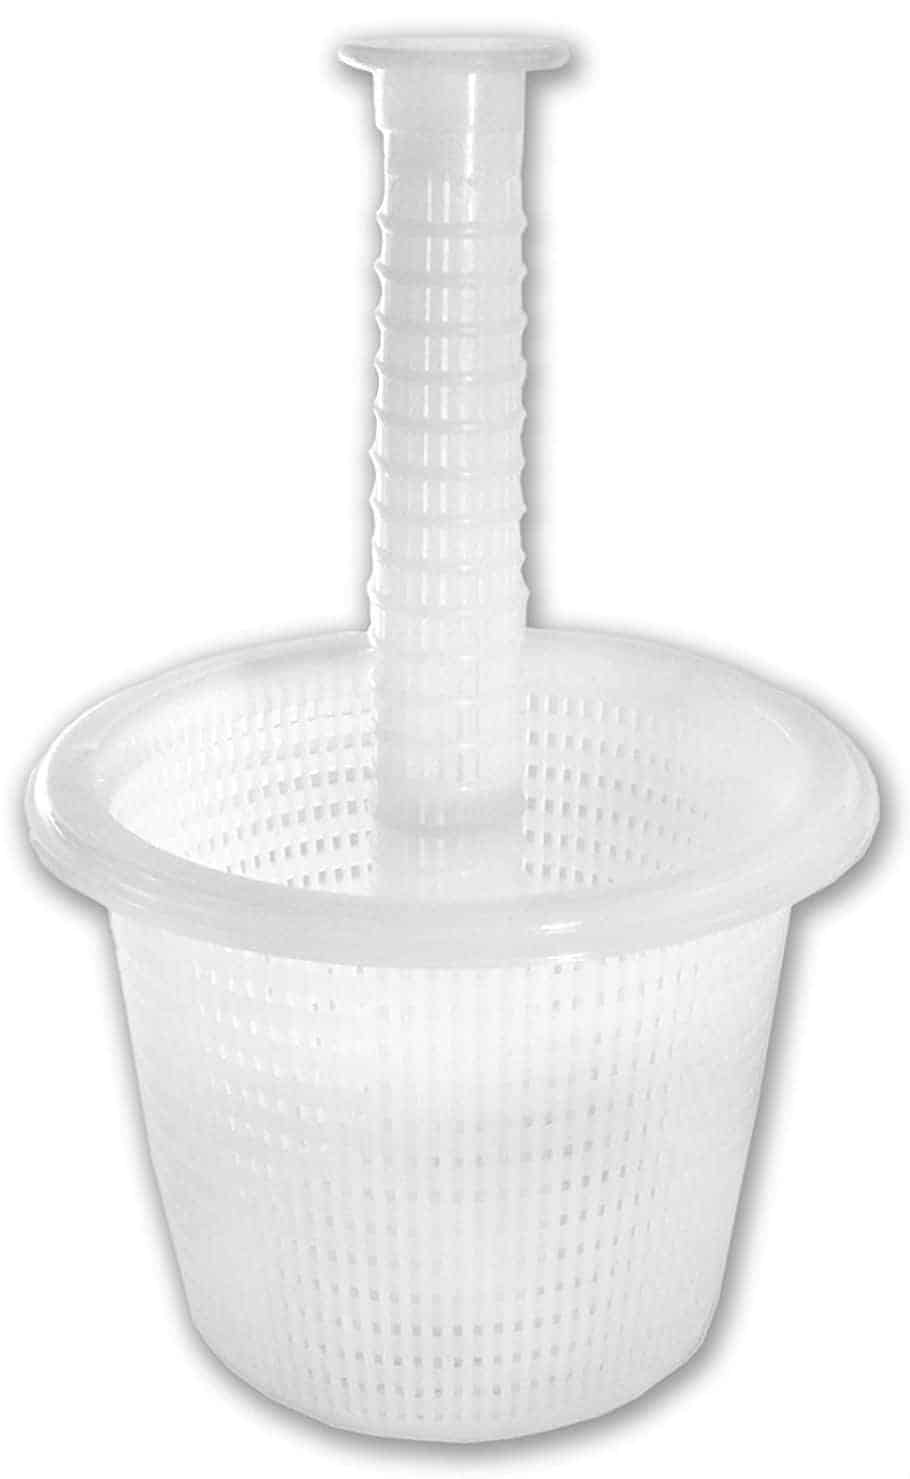 Skim Pro Skimmer Basket with Tower for Hayward SP1070 Series Pool Skimmers